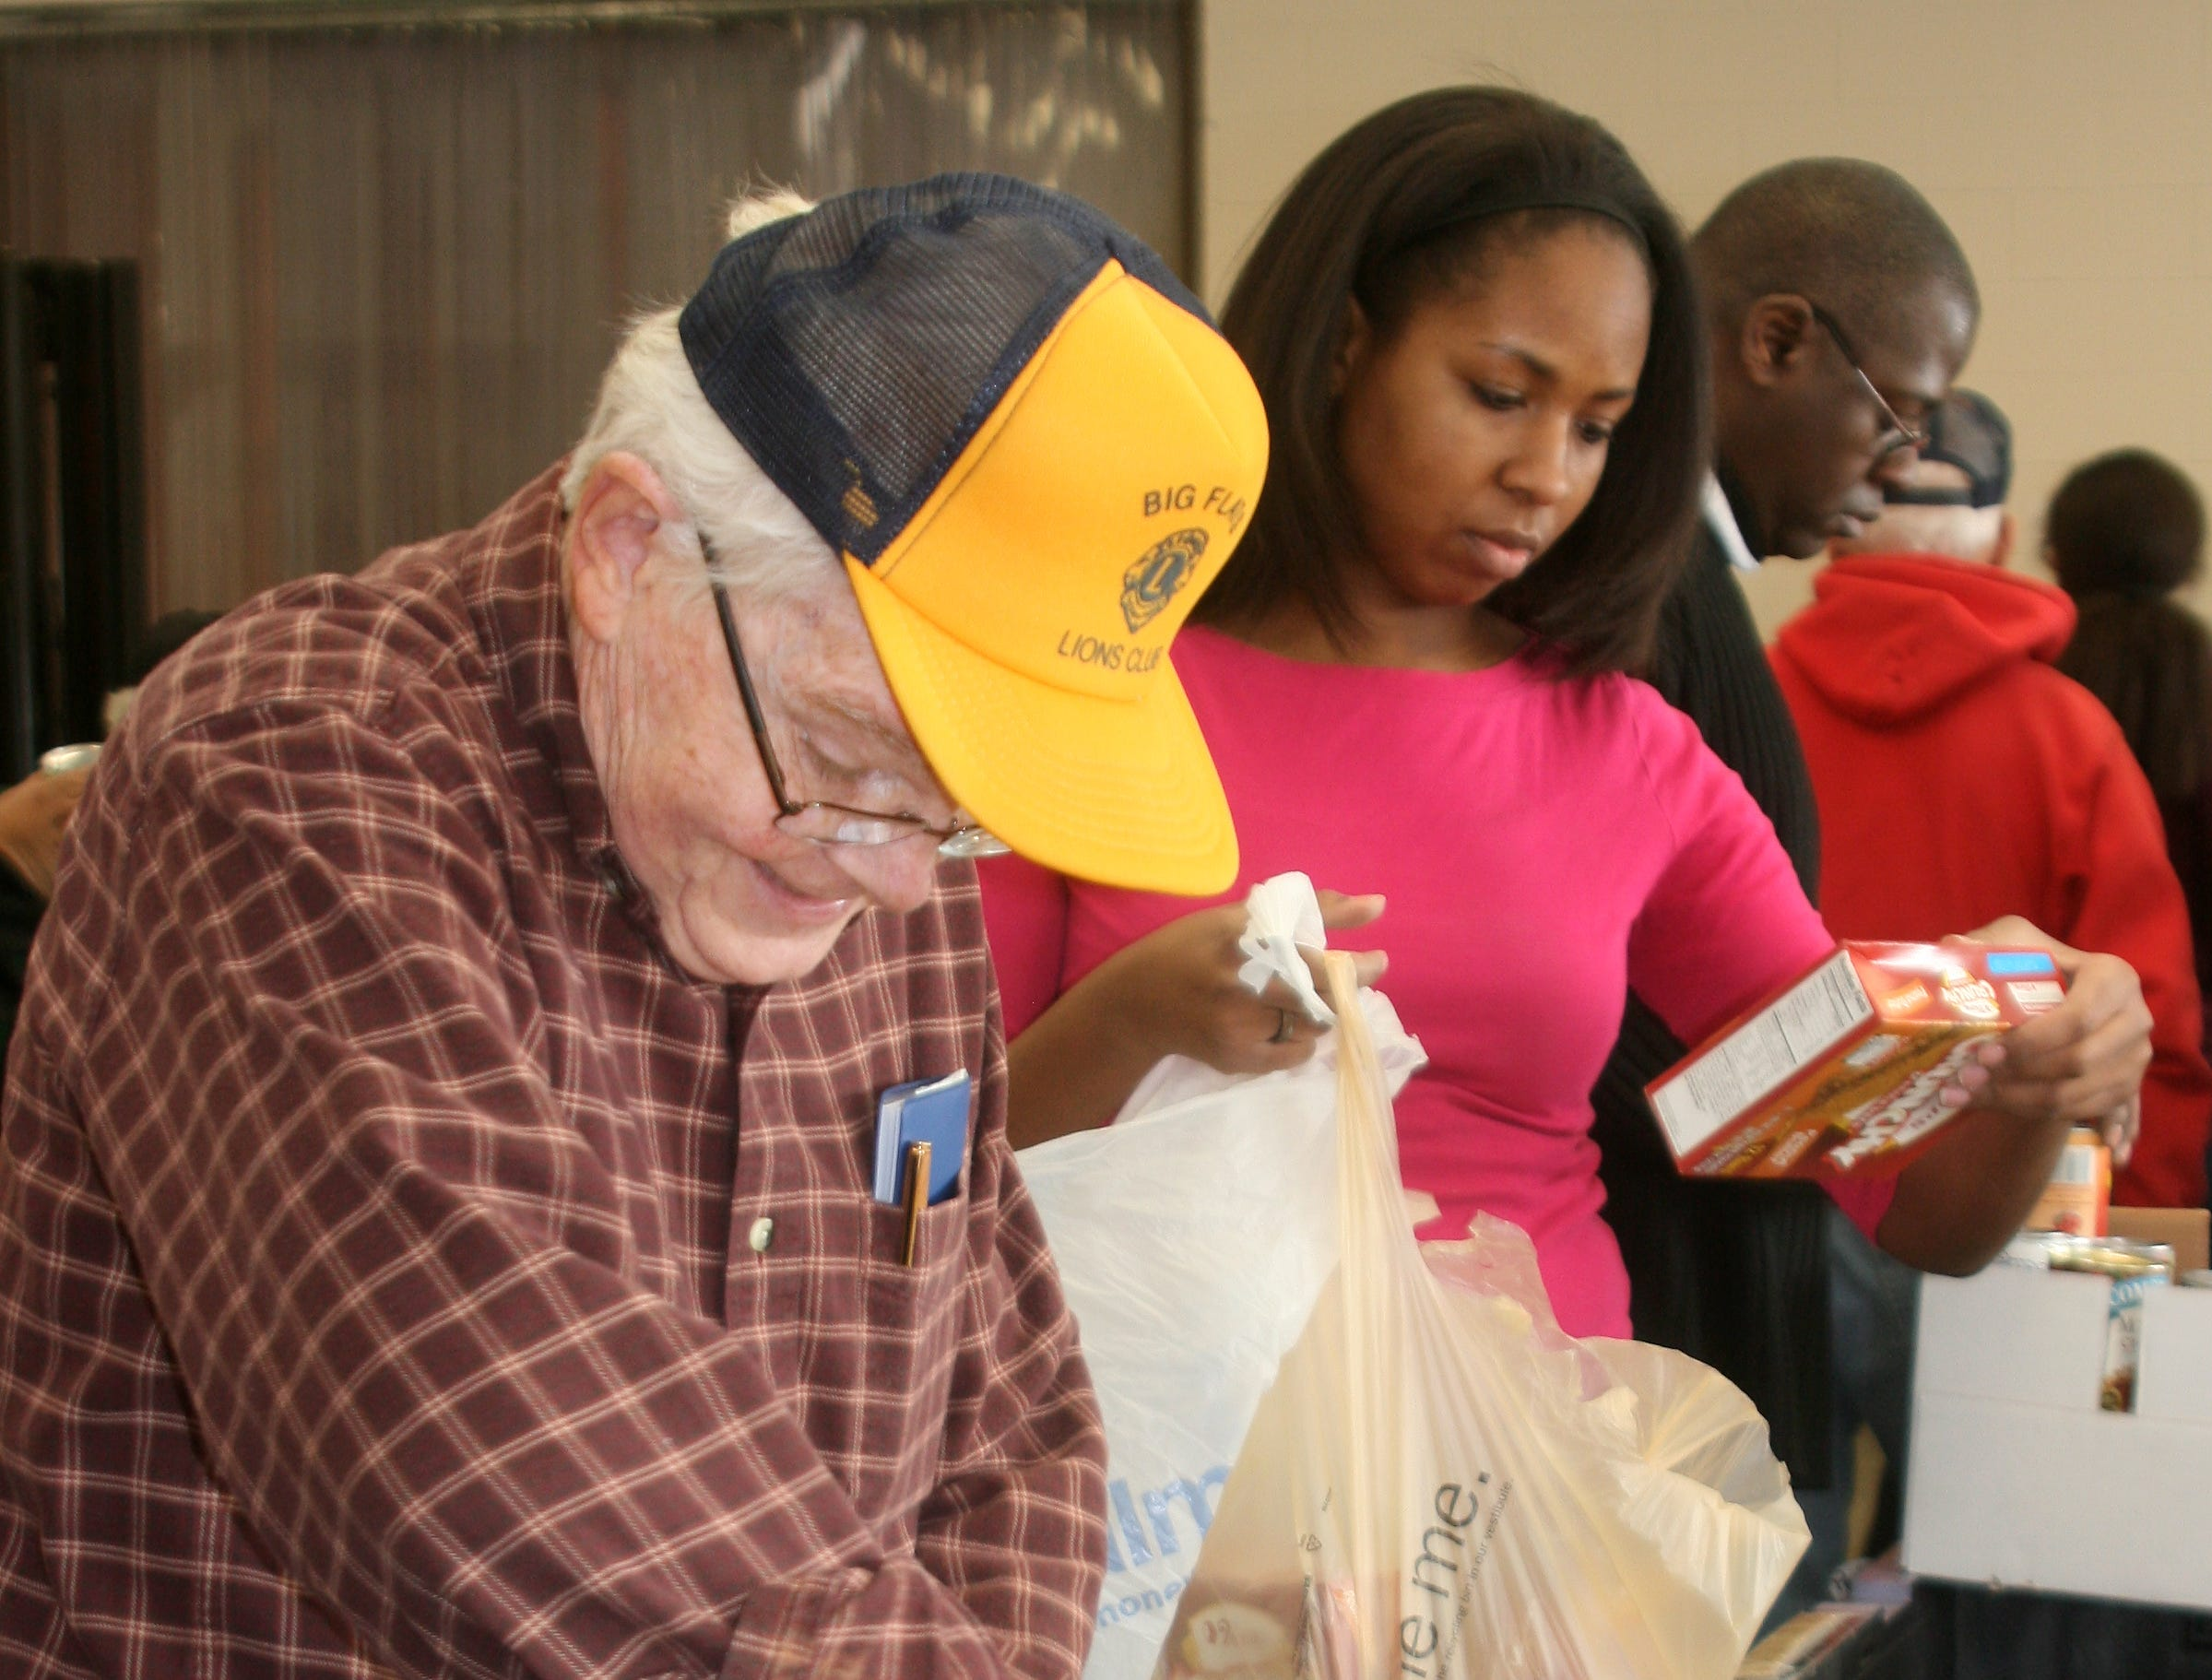 2012: Bill Powell, foreground, of Catlin, sorts canned goods Monday morning at Food Bank of the Southern Tier, 388 Upper Oakwood Ave., Elmira, during the agency's National Day of Service to honor Dr. Martin Luther King Jr.